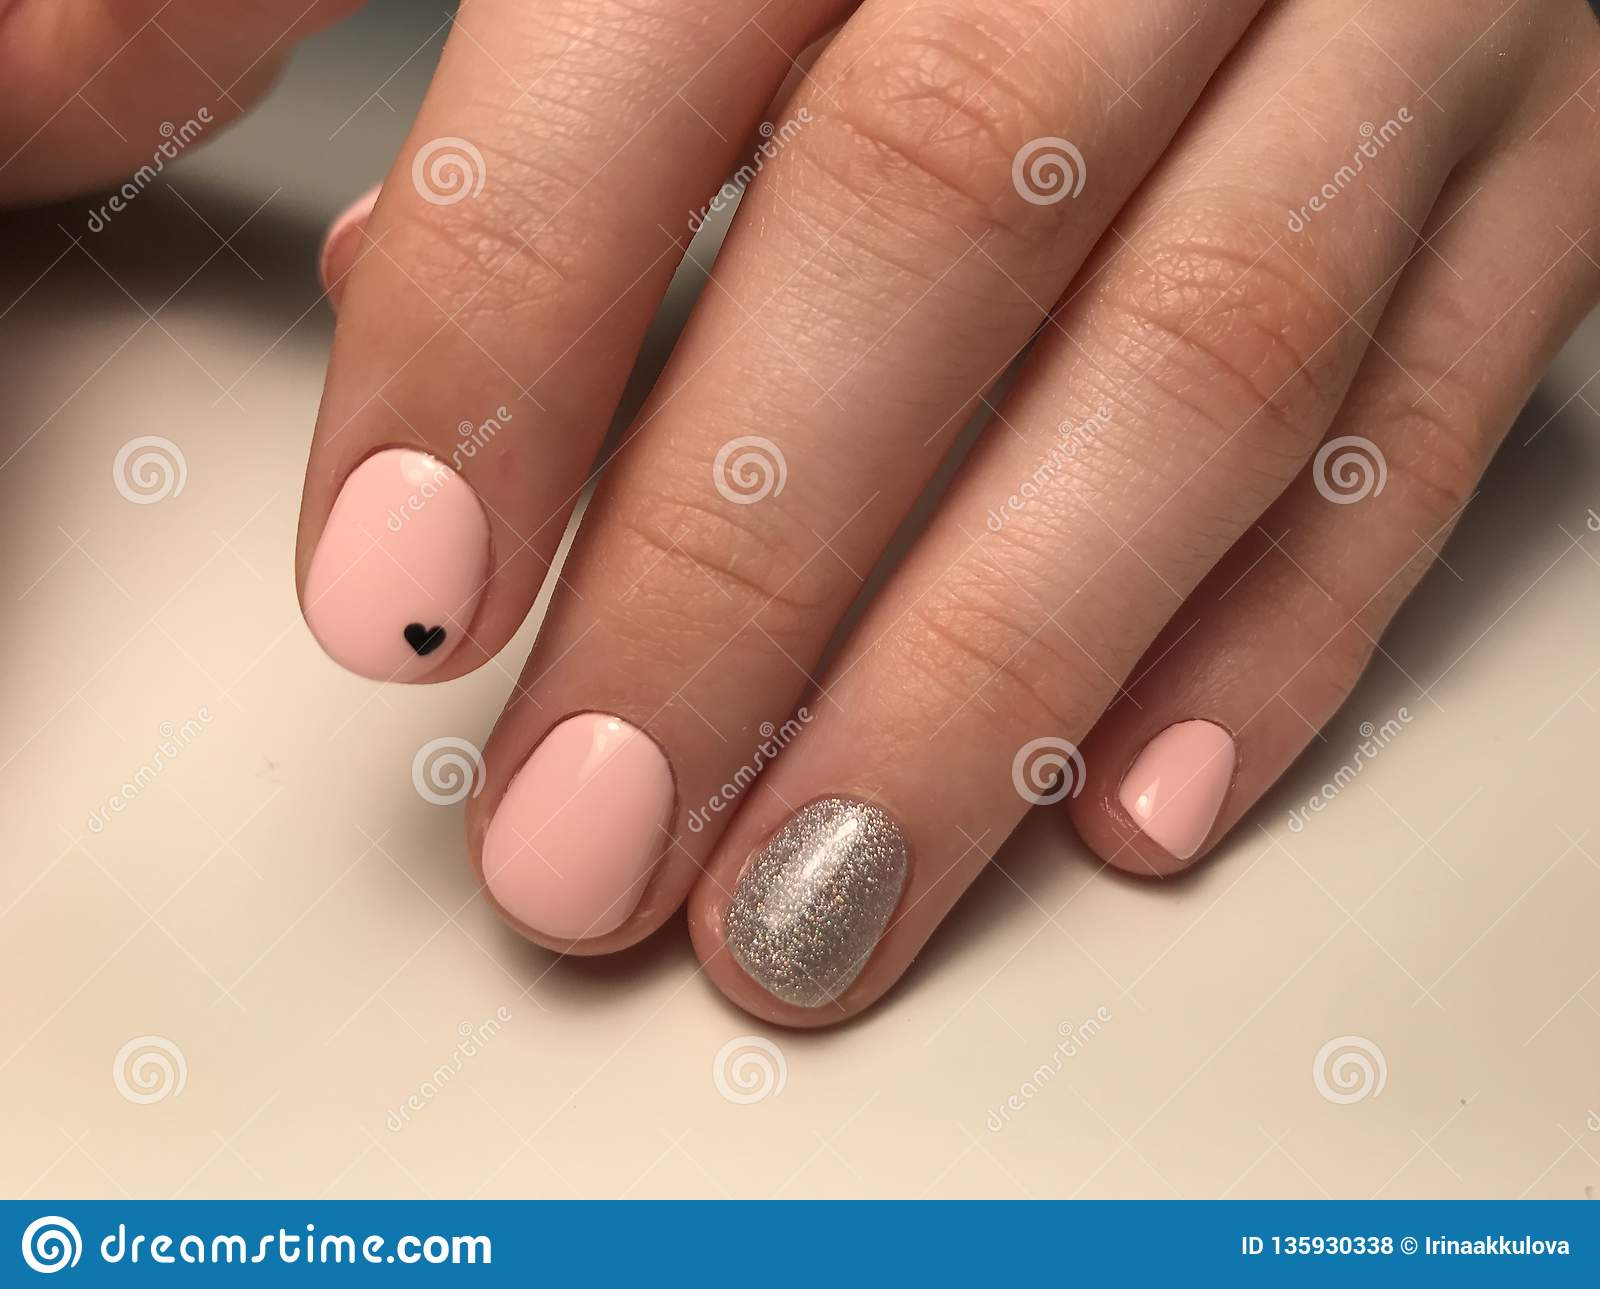 Cute Nail Design For Teenagers Stock Photo - Image of perfect ...